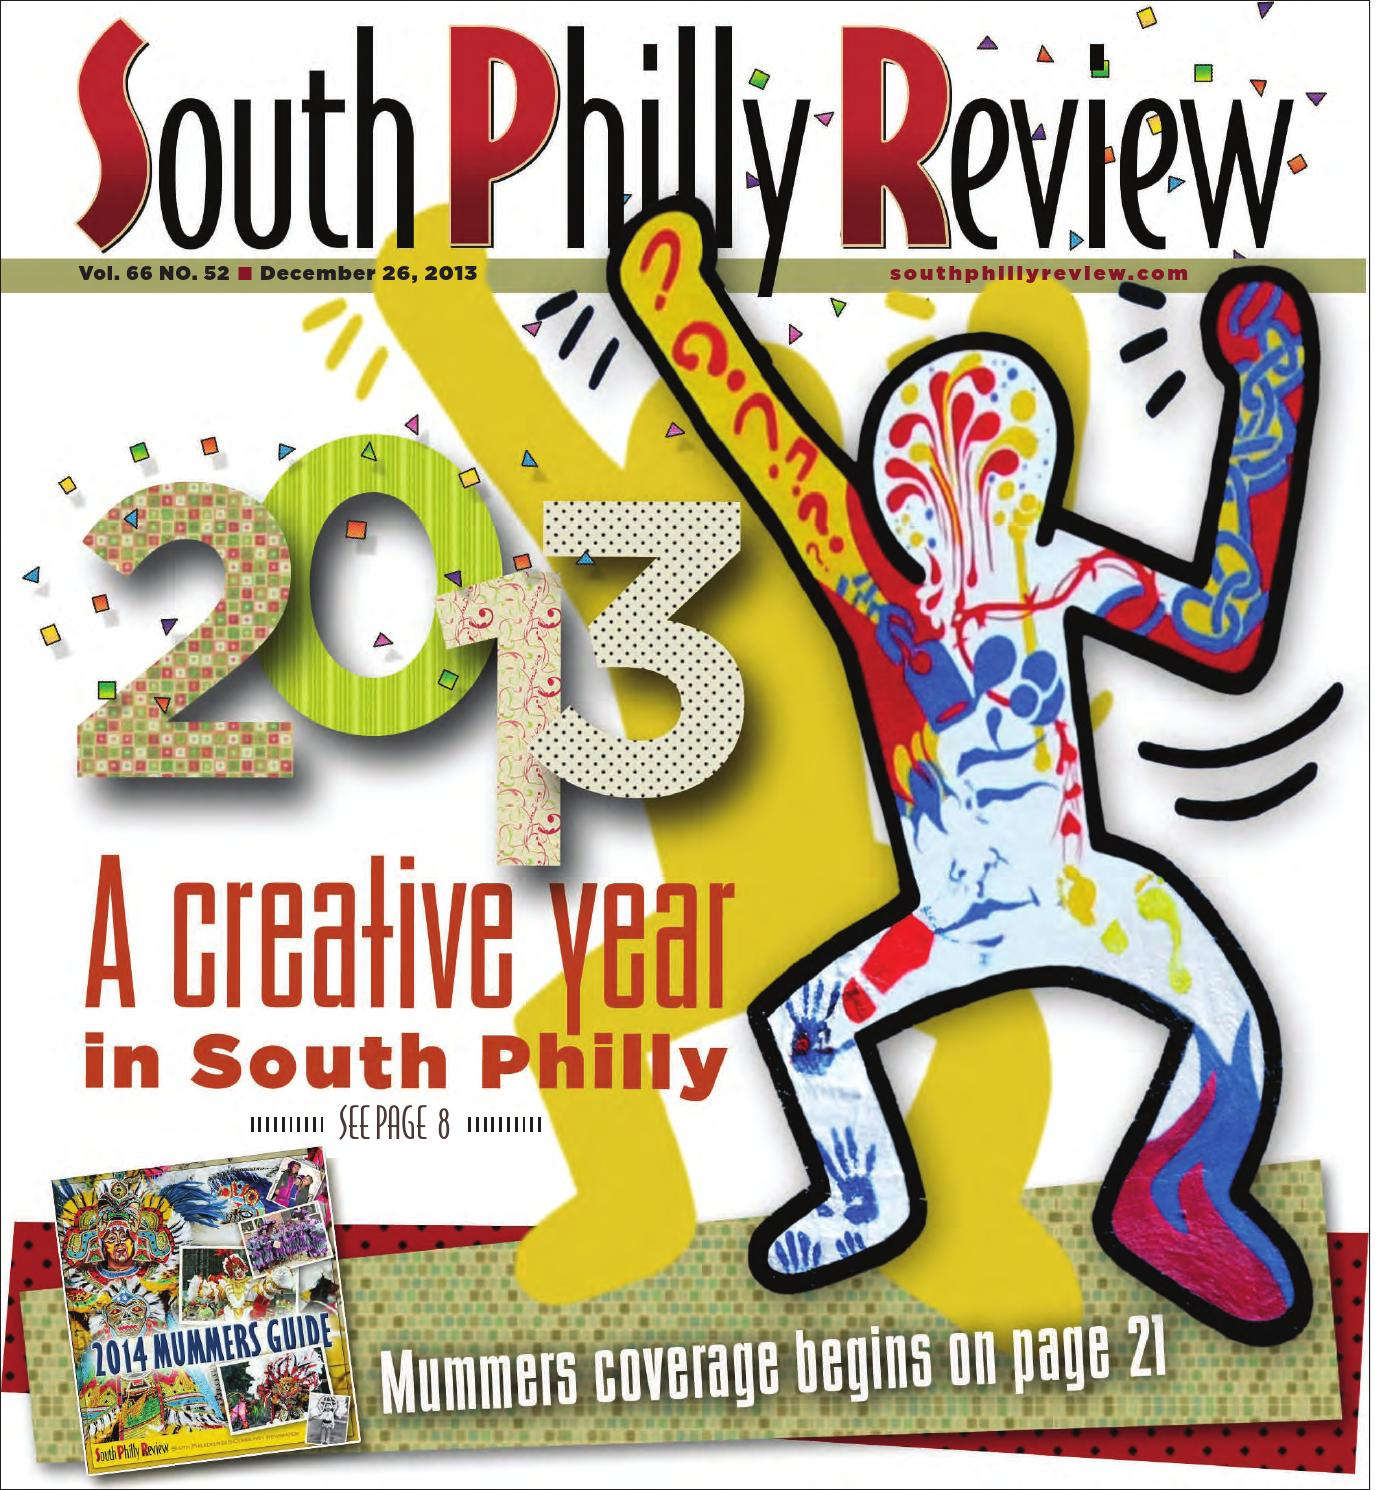 630f9b4229a South Philly Review 12-26-2013 by South Philly Review - issuu